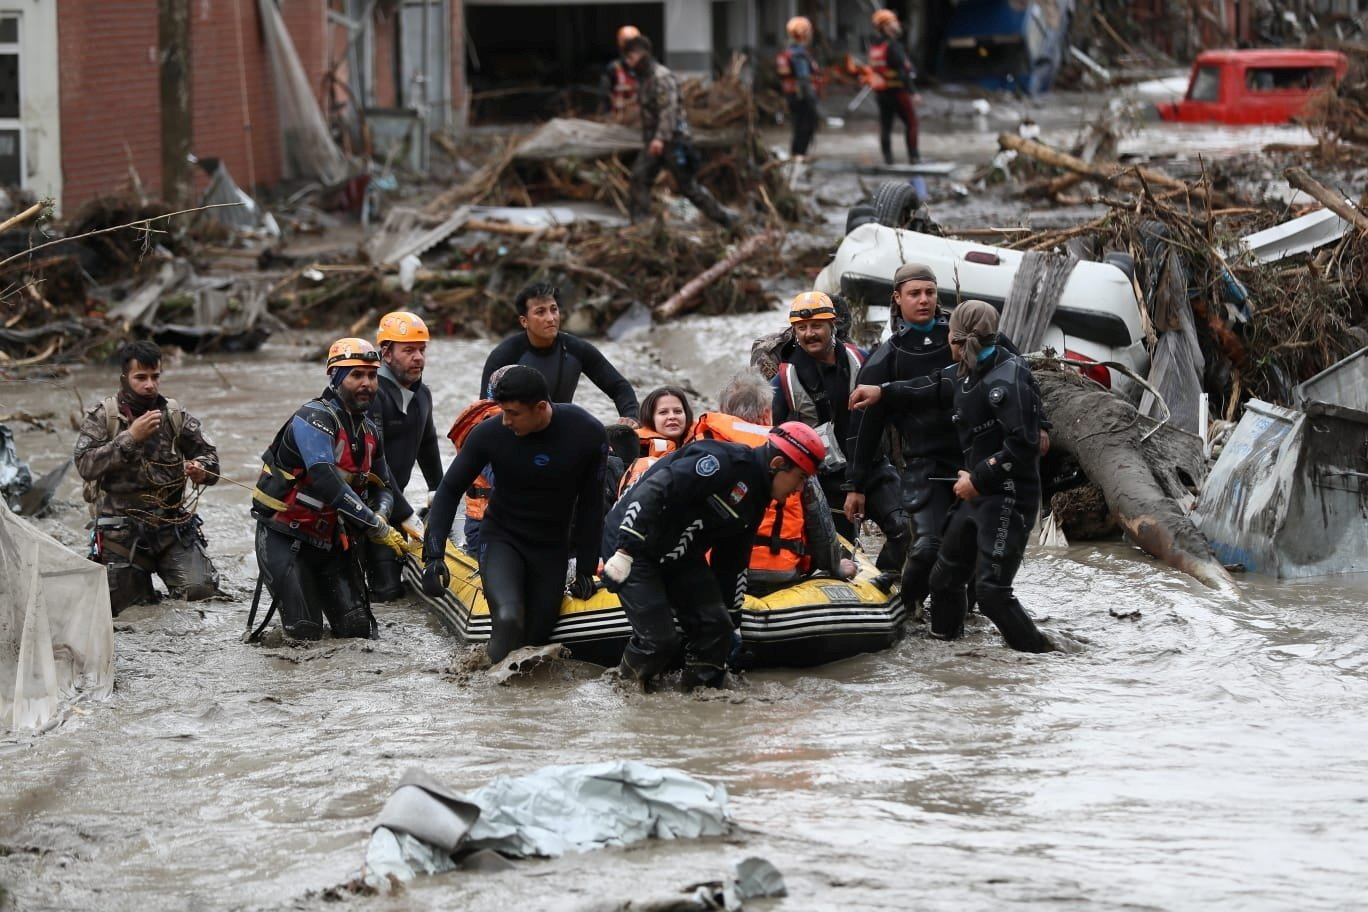 Search and rescue team members evacuate locals during flash floods sweeping through towns in the Black Sea region, in Bozkurt, a town in Kastamonu province, northern Turkey, Aug. 12, 2021. (Reuters Photo)